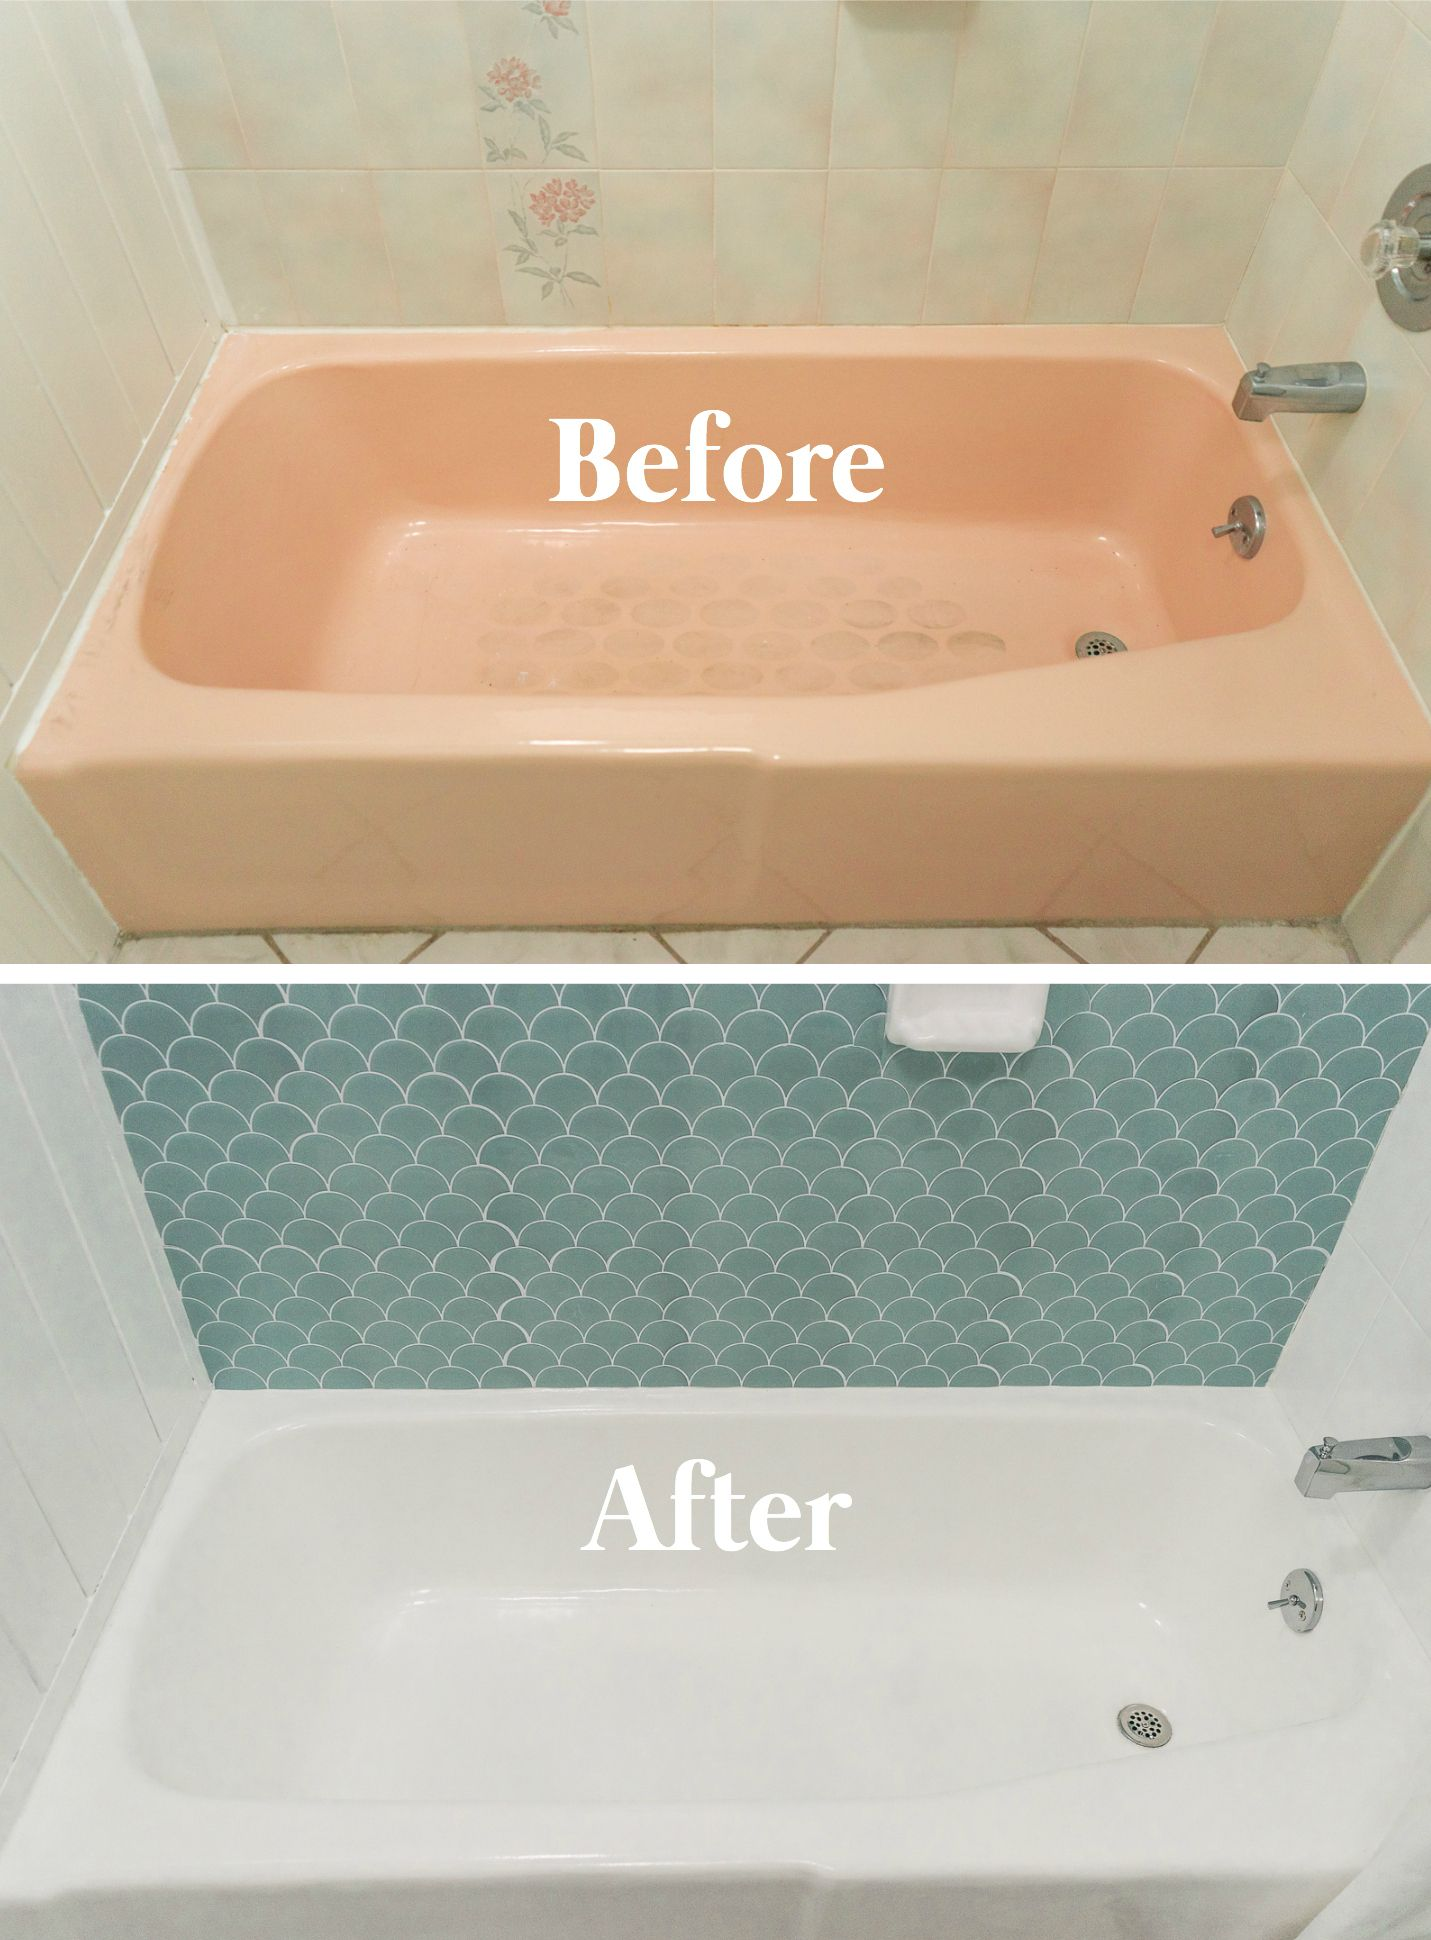 How To Paint A Bathtub And Shower For 50 In 2020 With Images Pink Bathtub Bathtub Makeover Bathtub